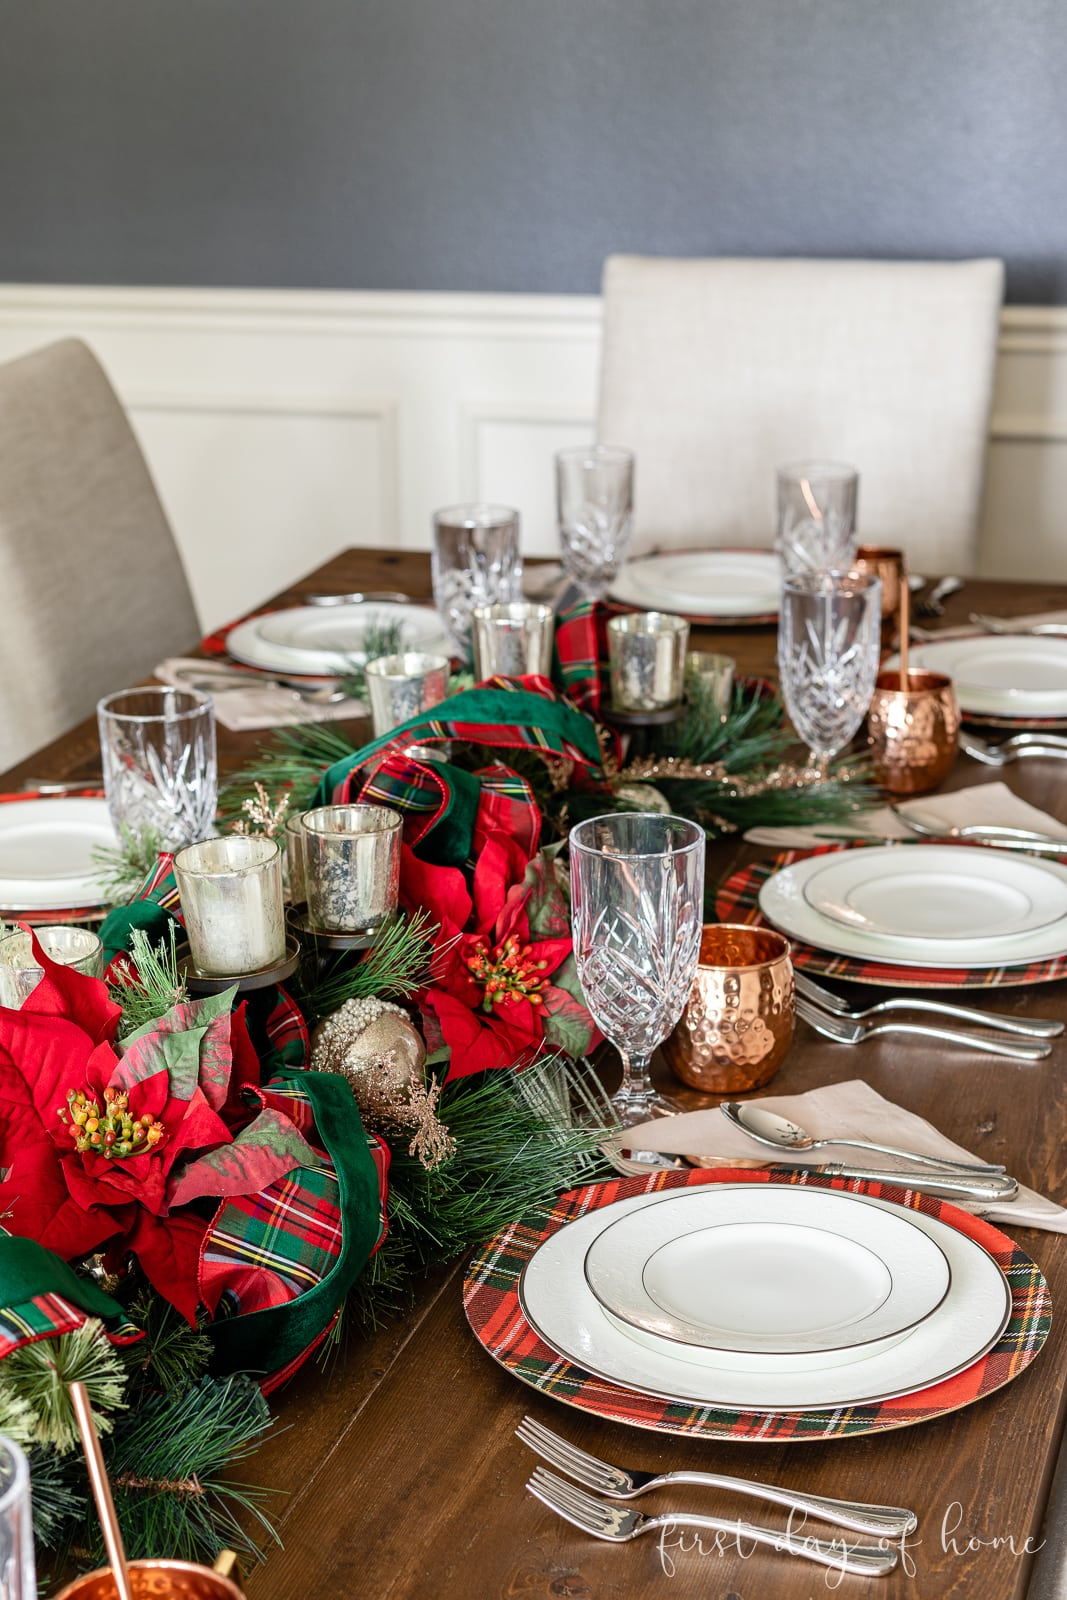 DIY charger plates displayed on dining room table with white china and Christmas centerpiece